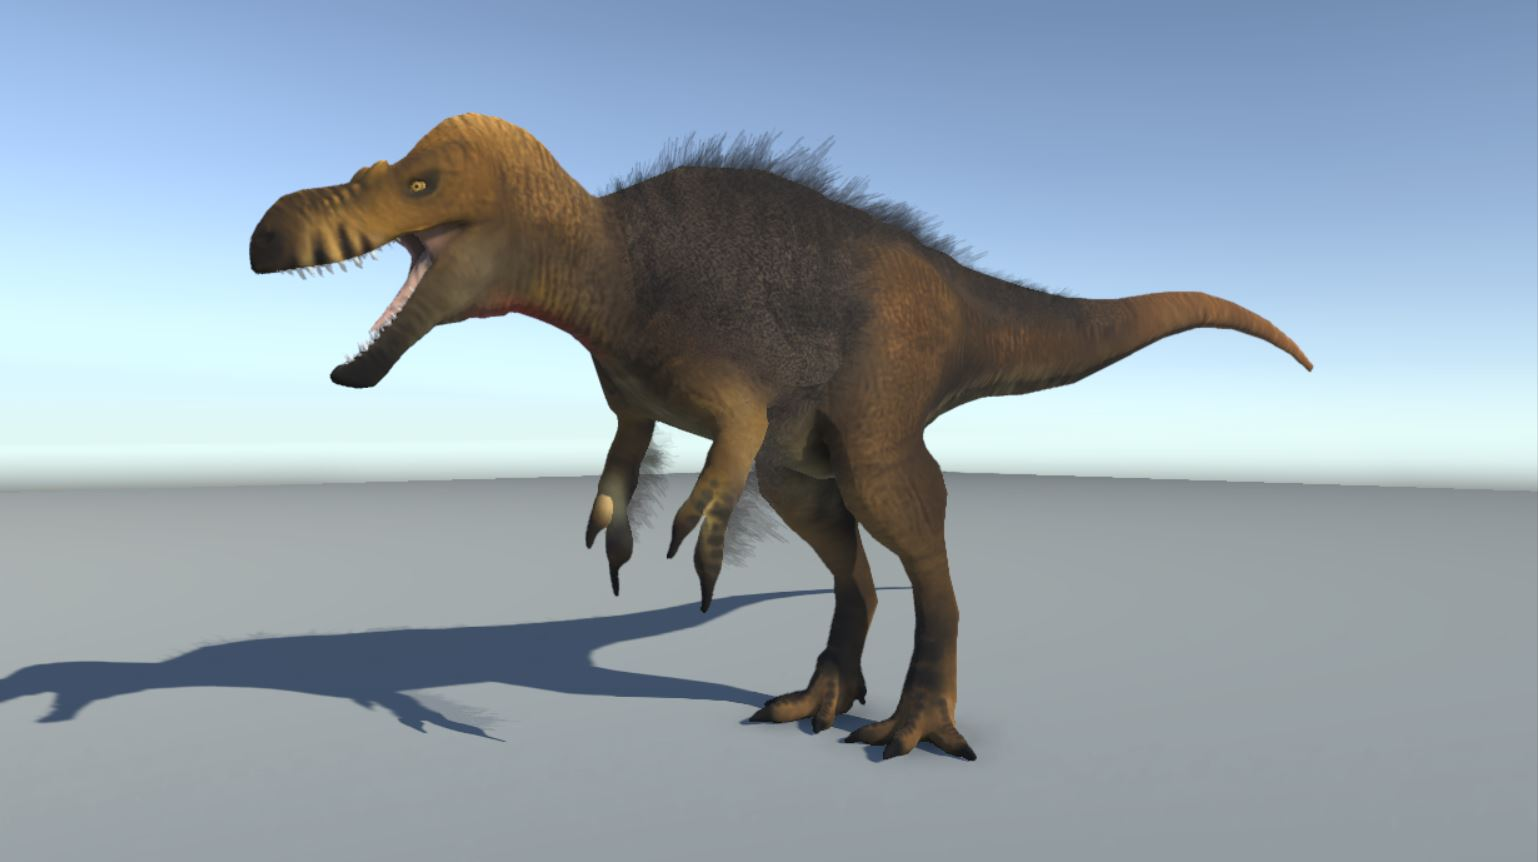 This is the current version of our Appalachiosaurus